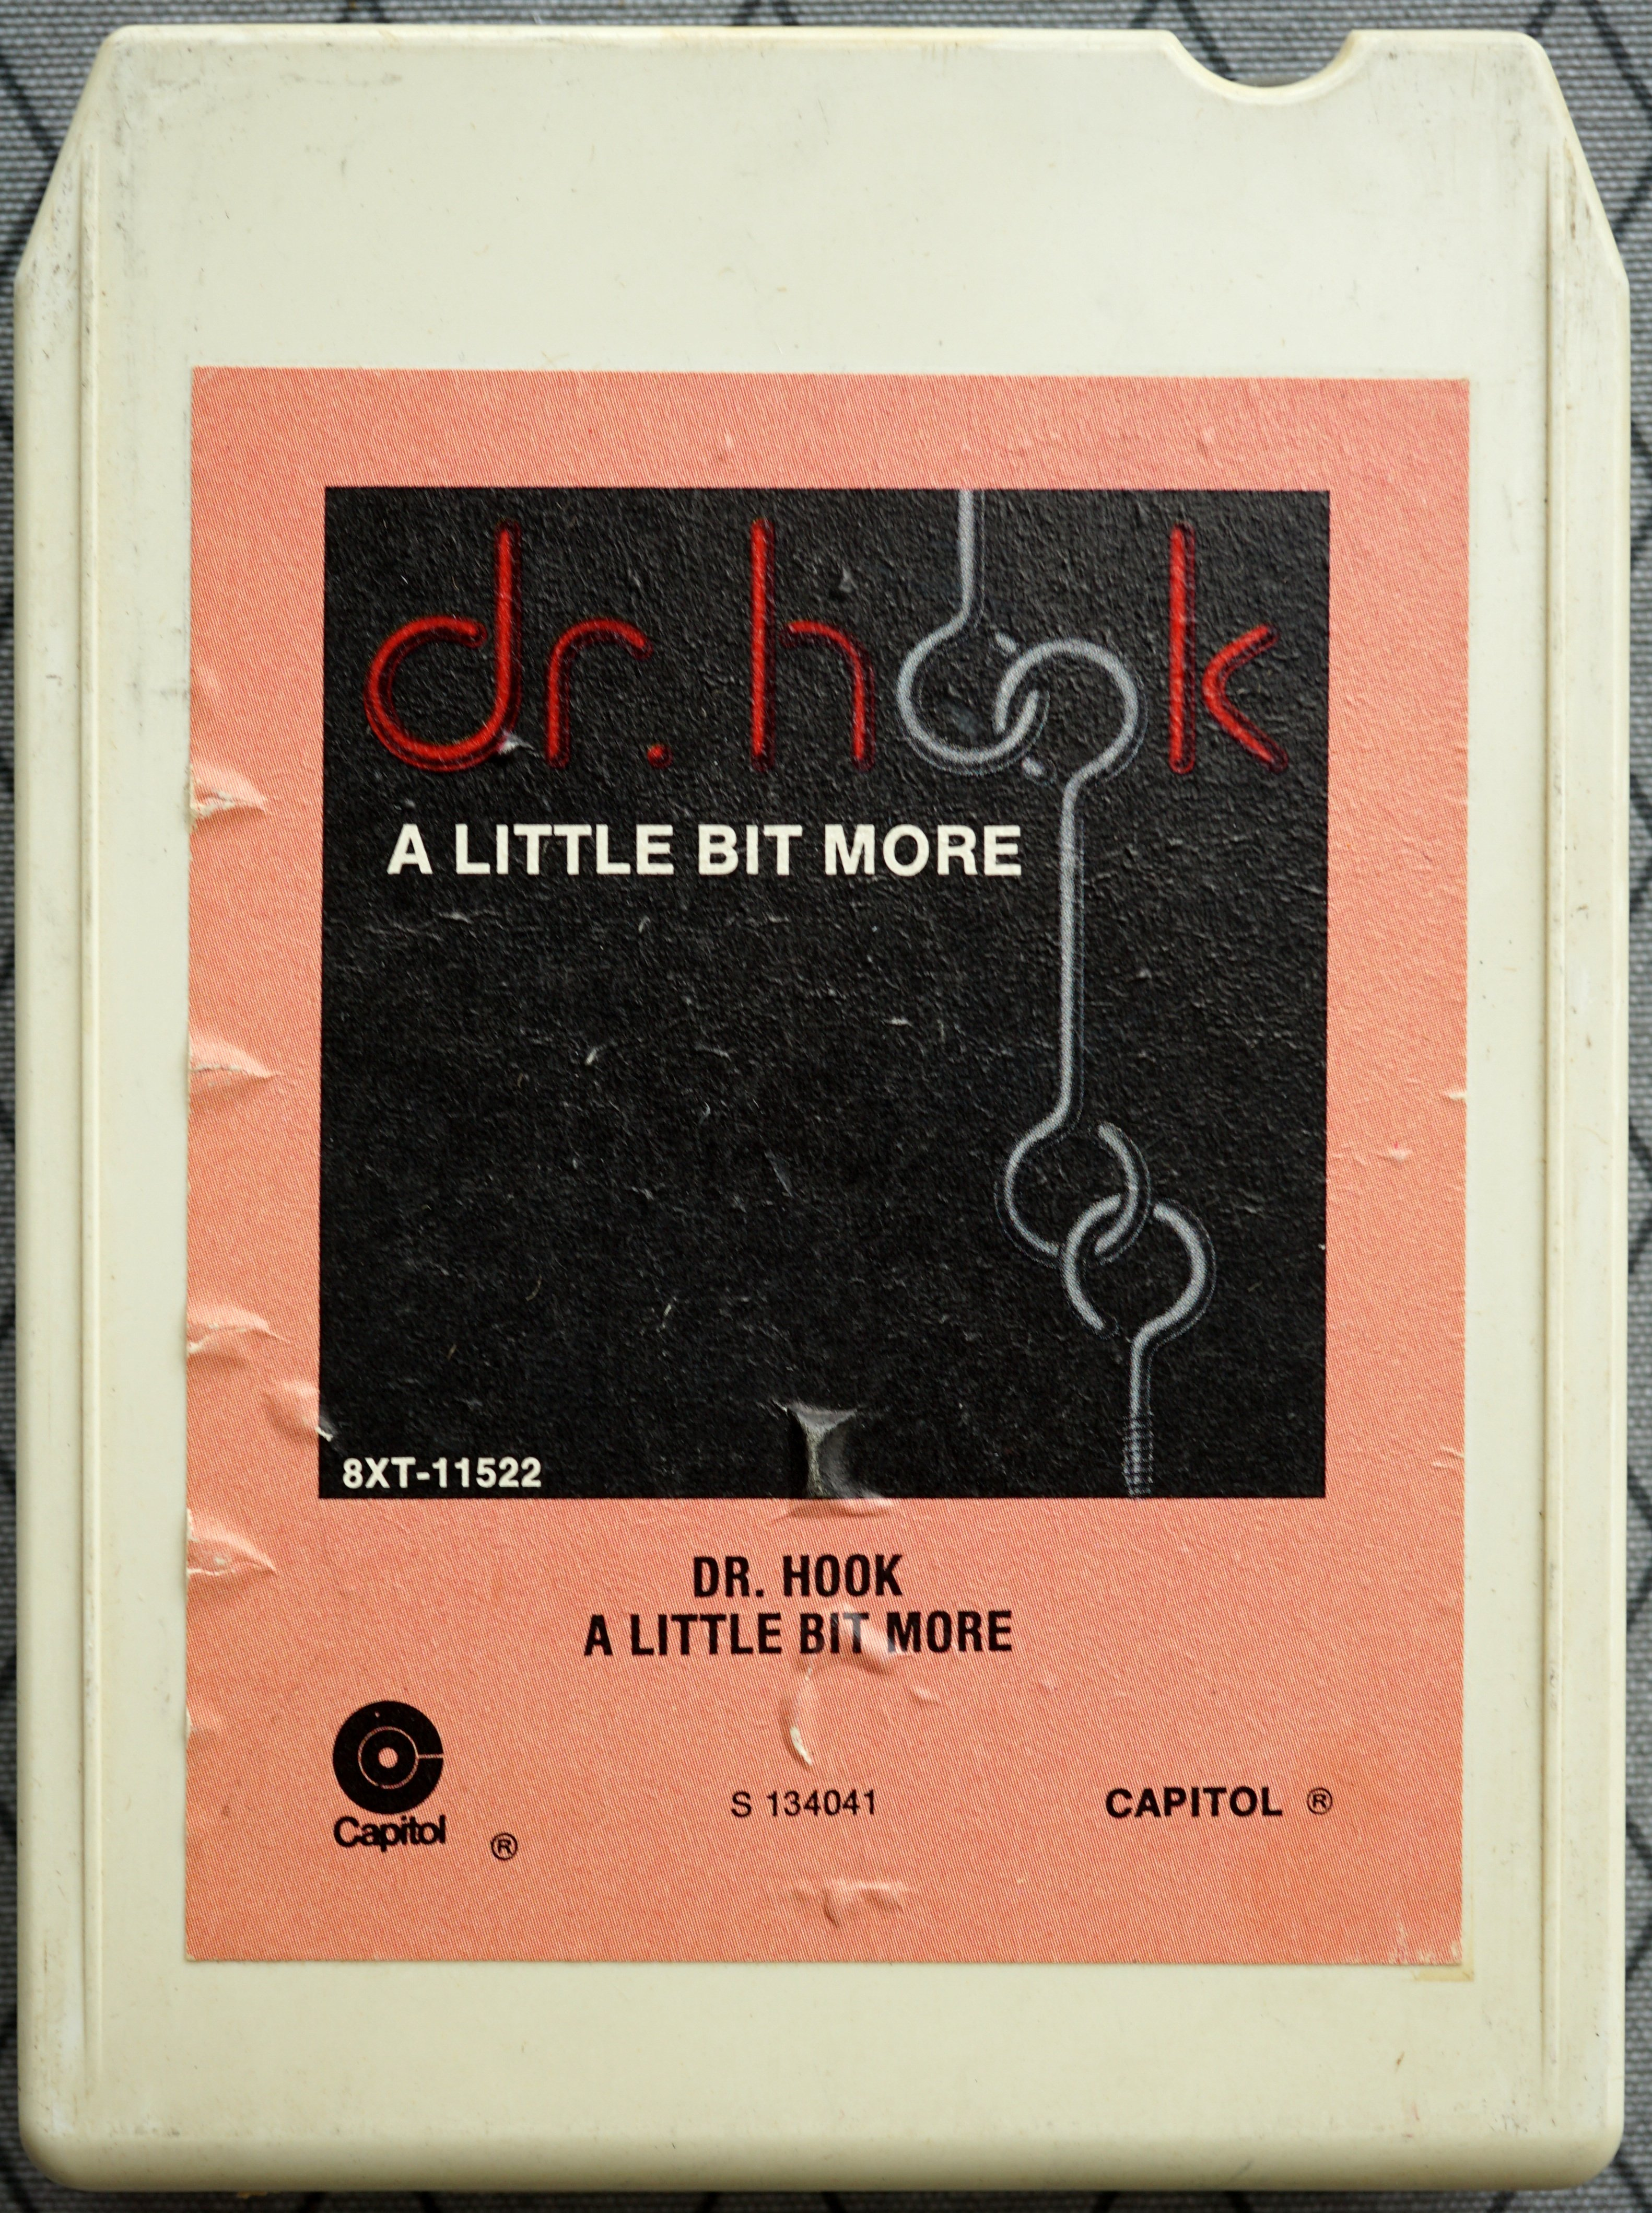 8 track - ALittle Bit More - US 1976